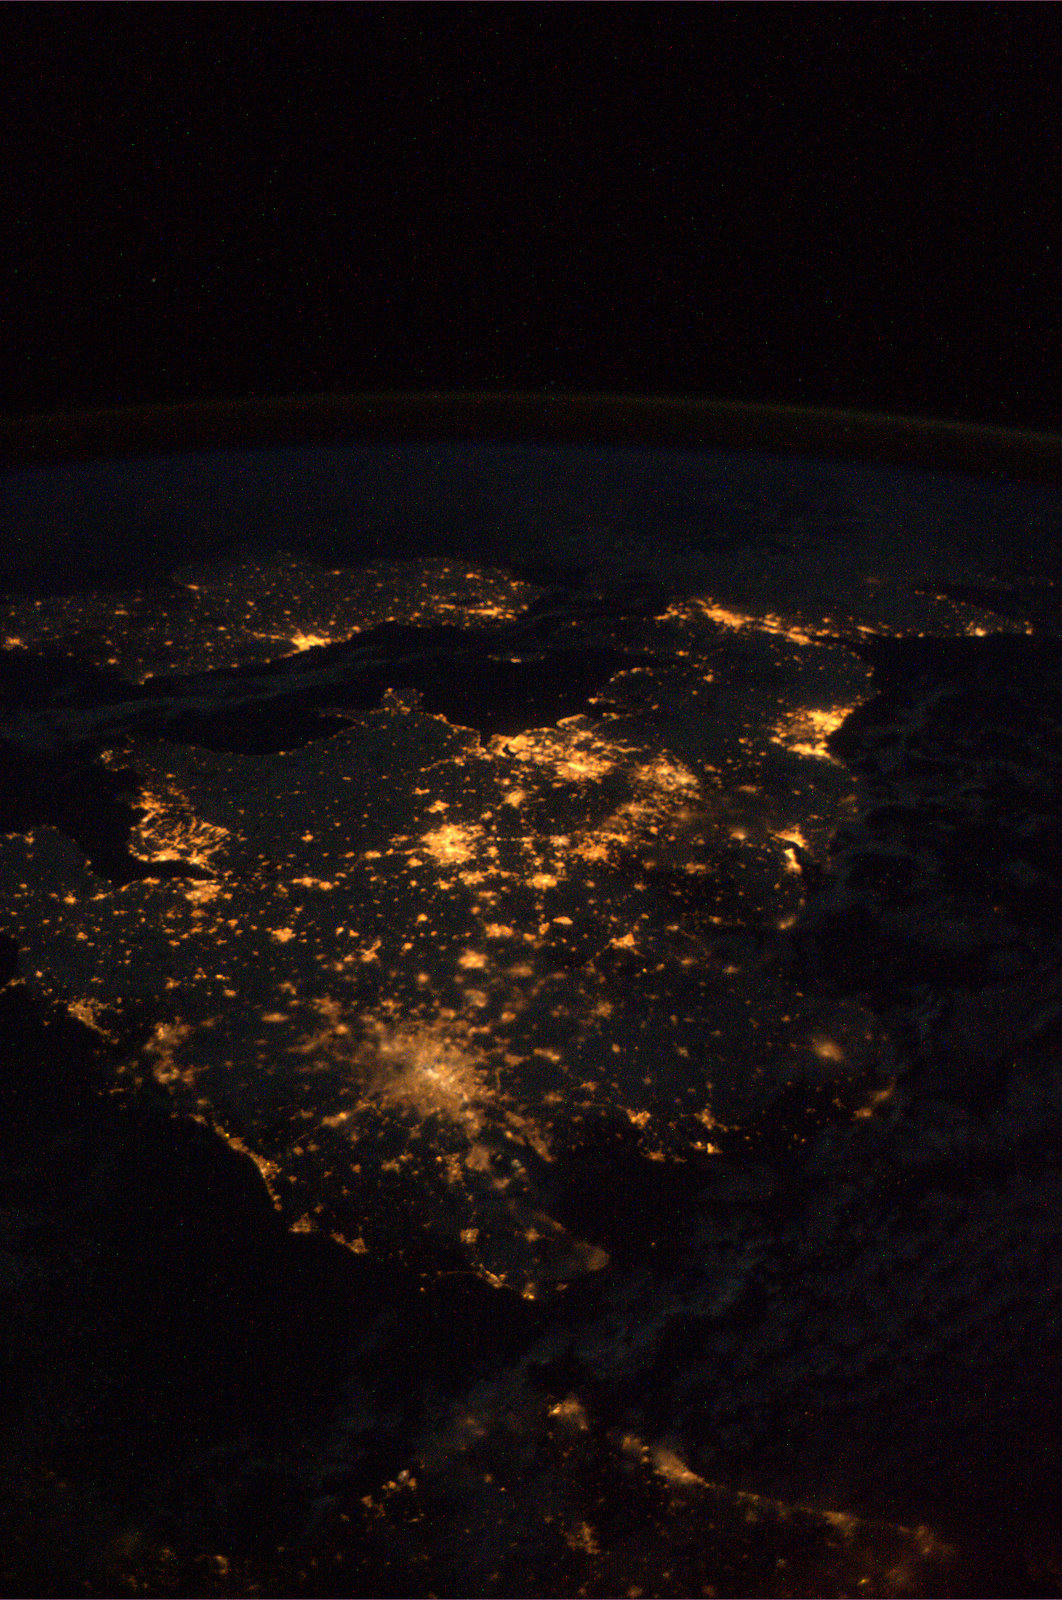 Ireland and the UK as seen from the ISS. Credit: ESA/NASA